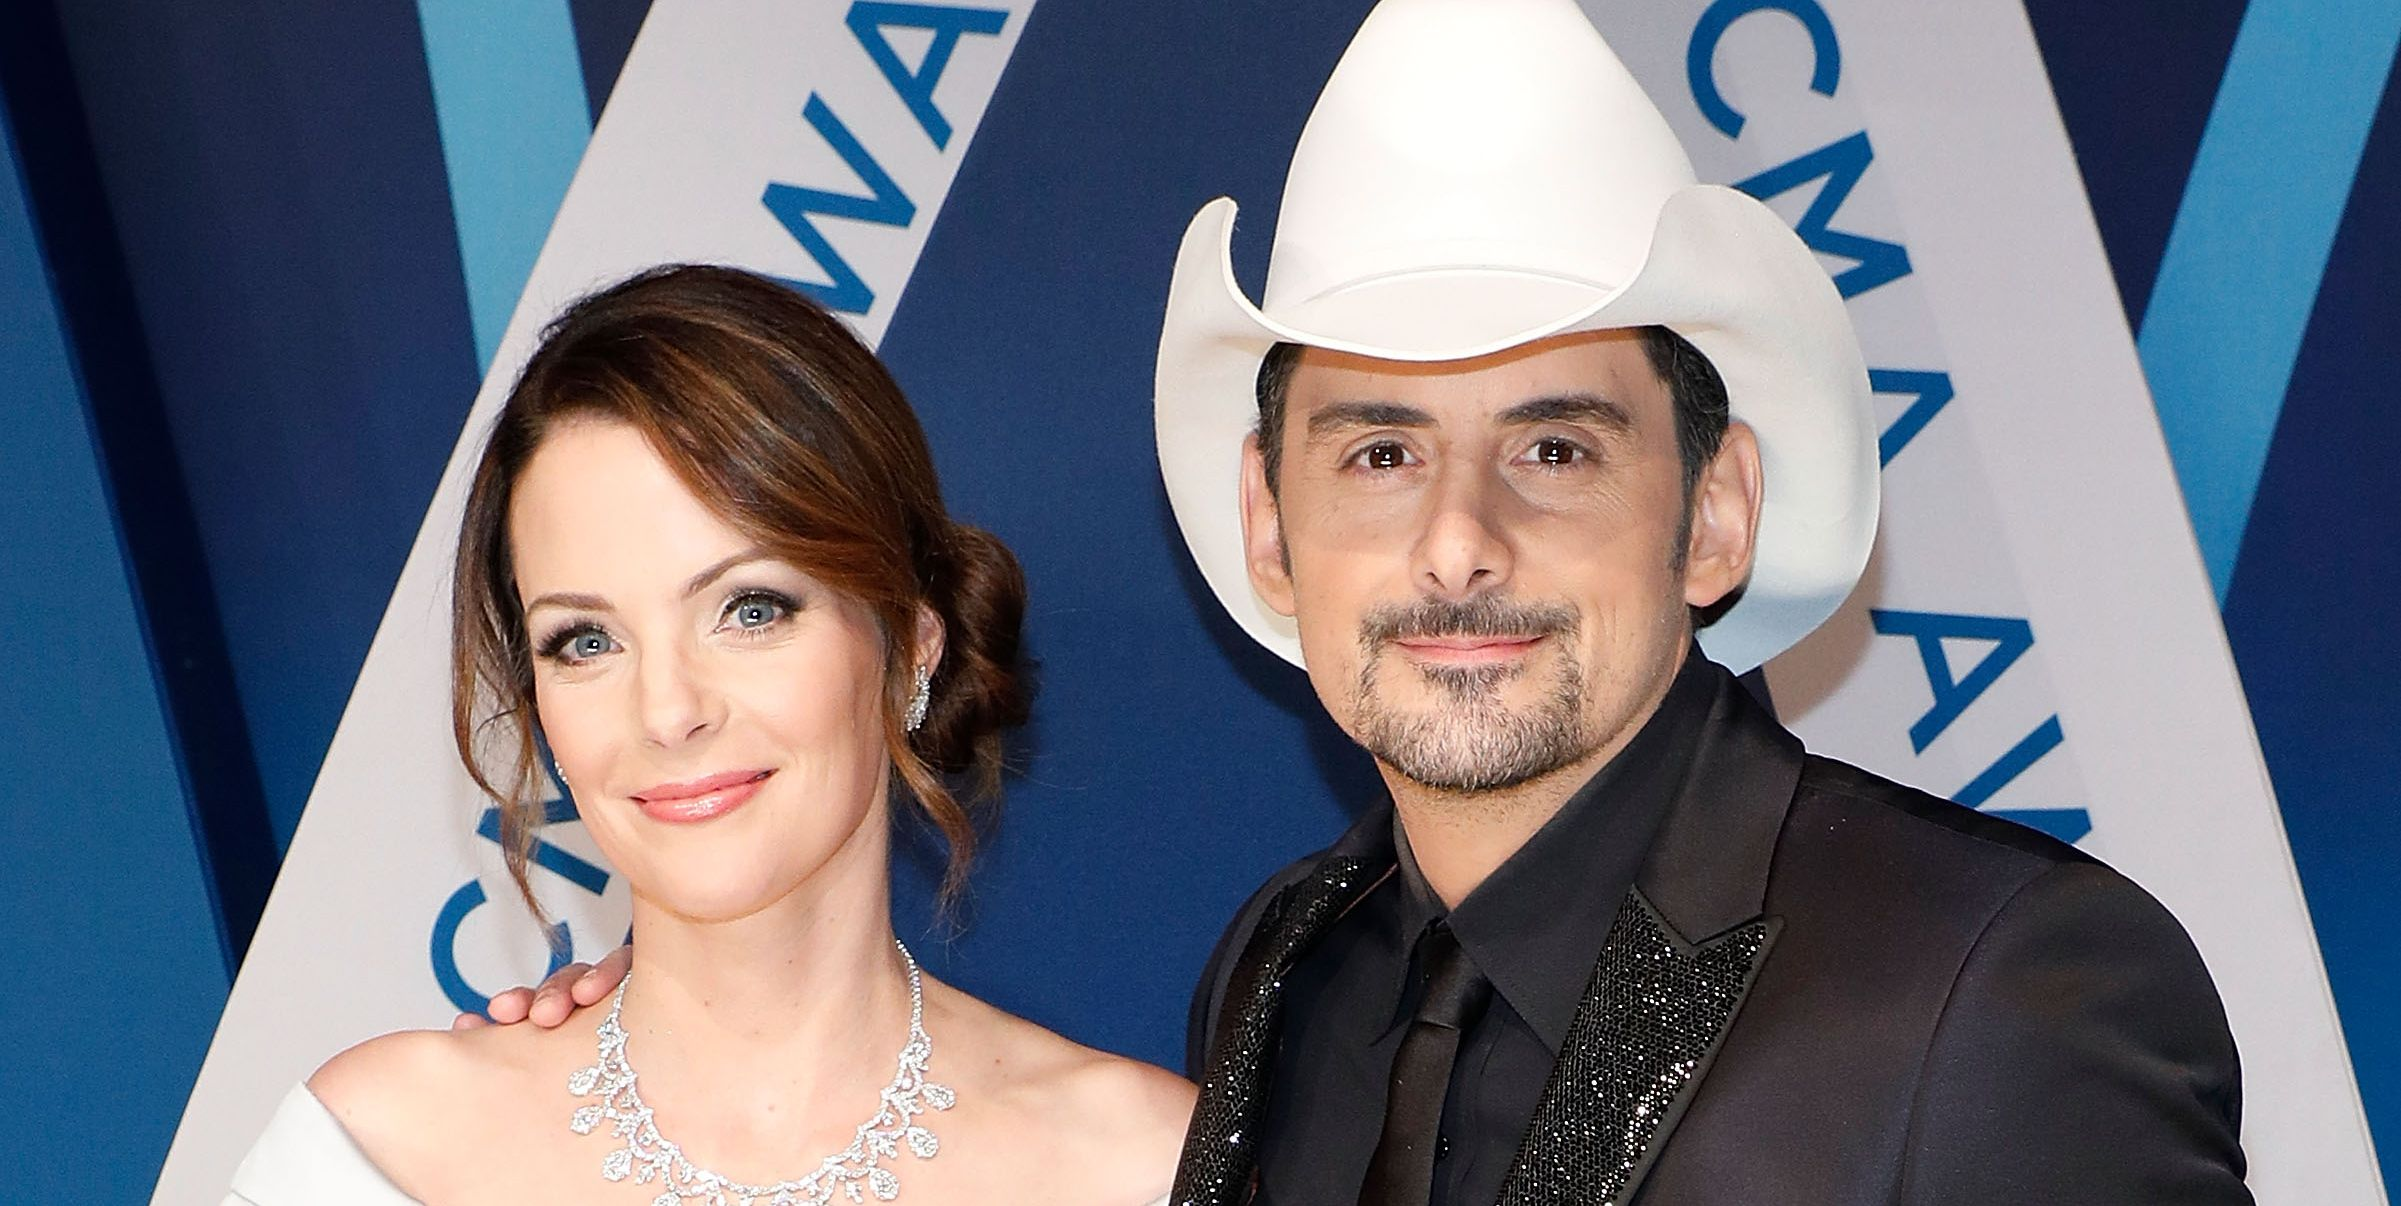 brad paisley wife kimberly williams paisley